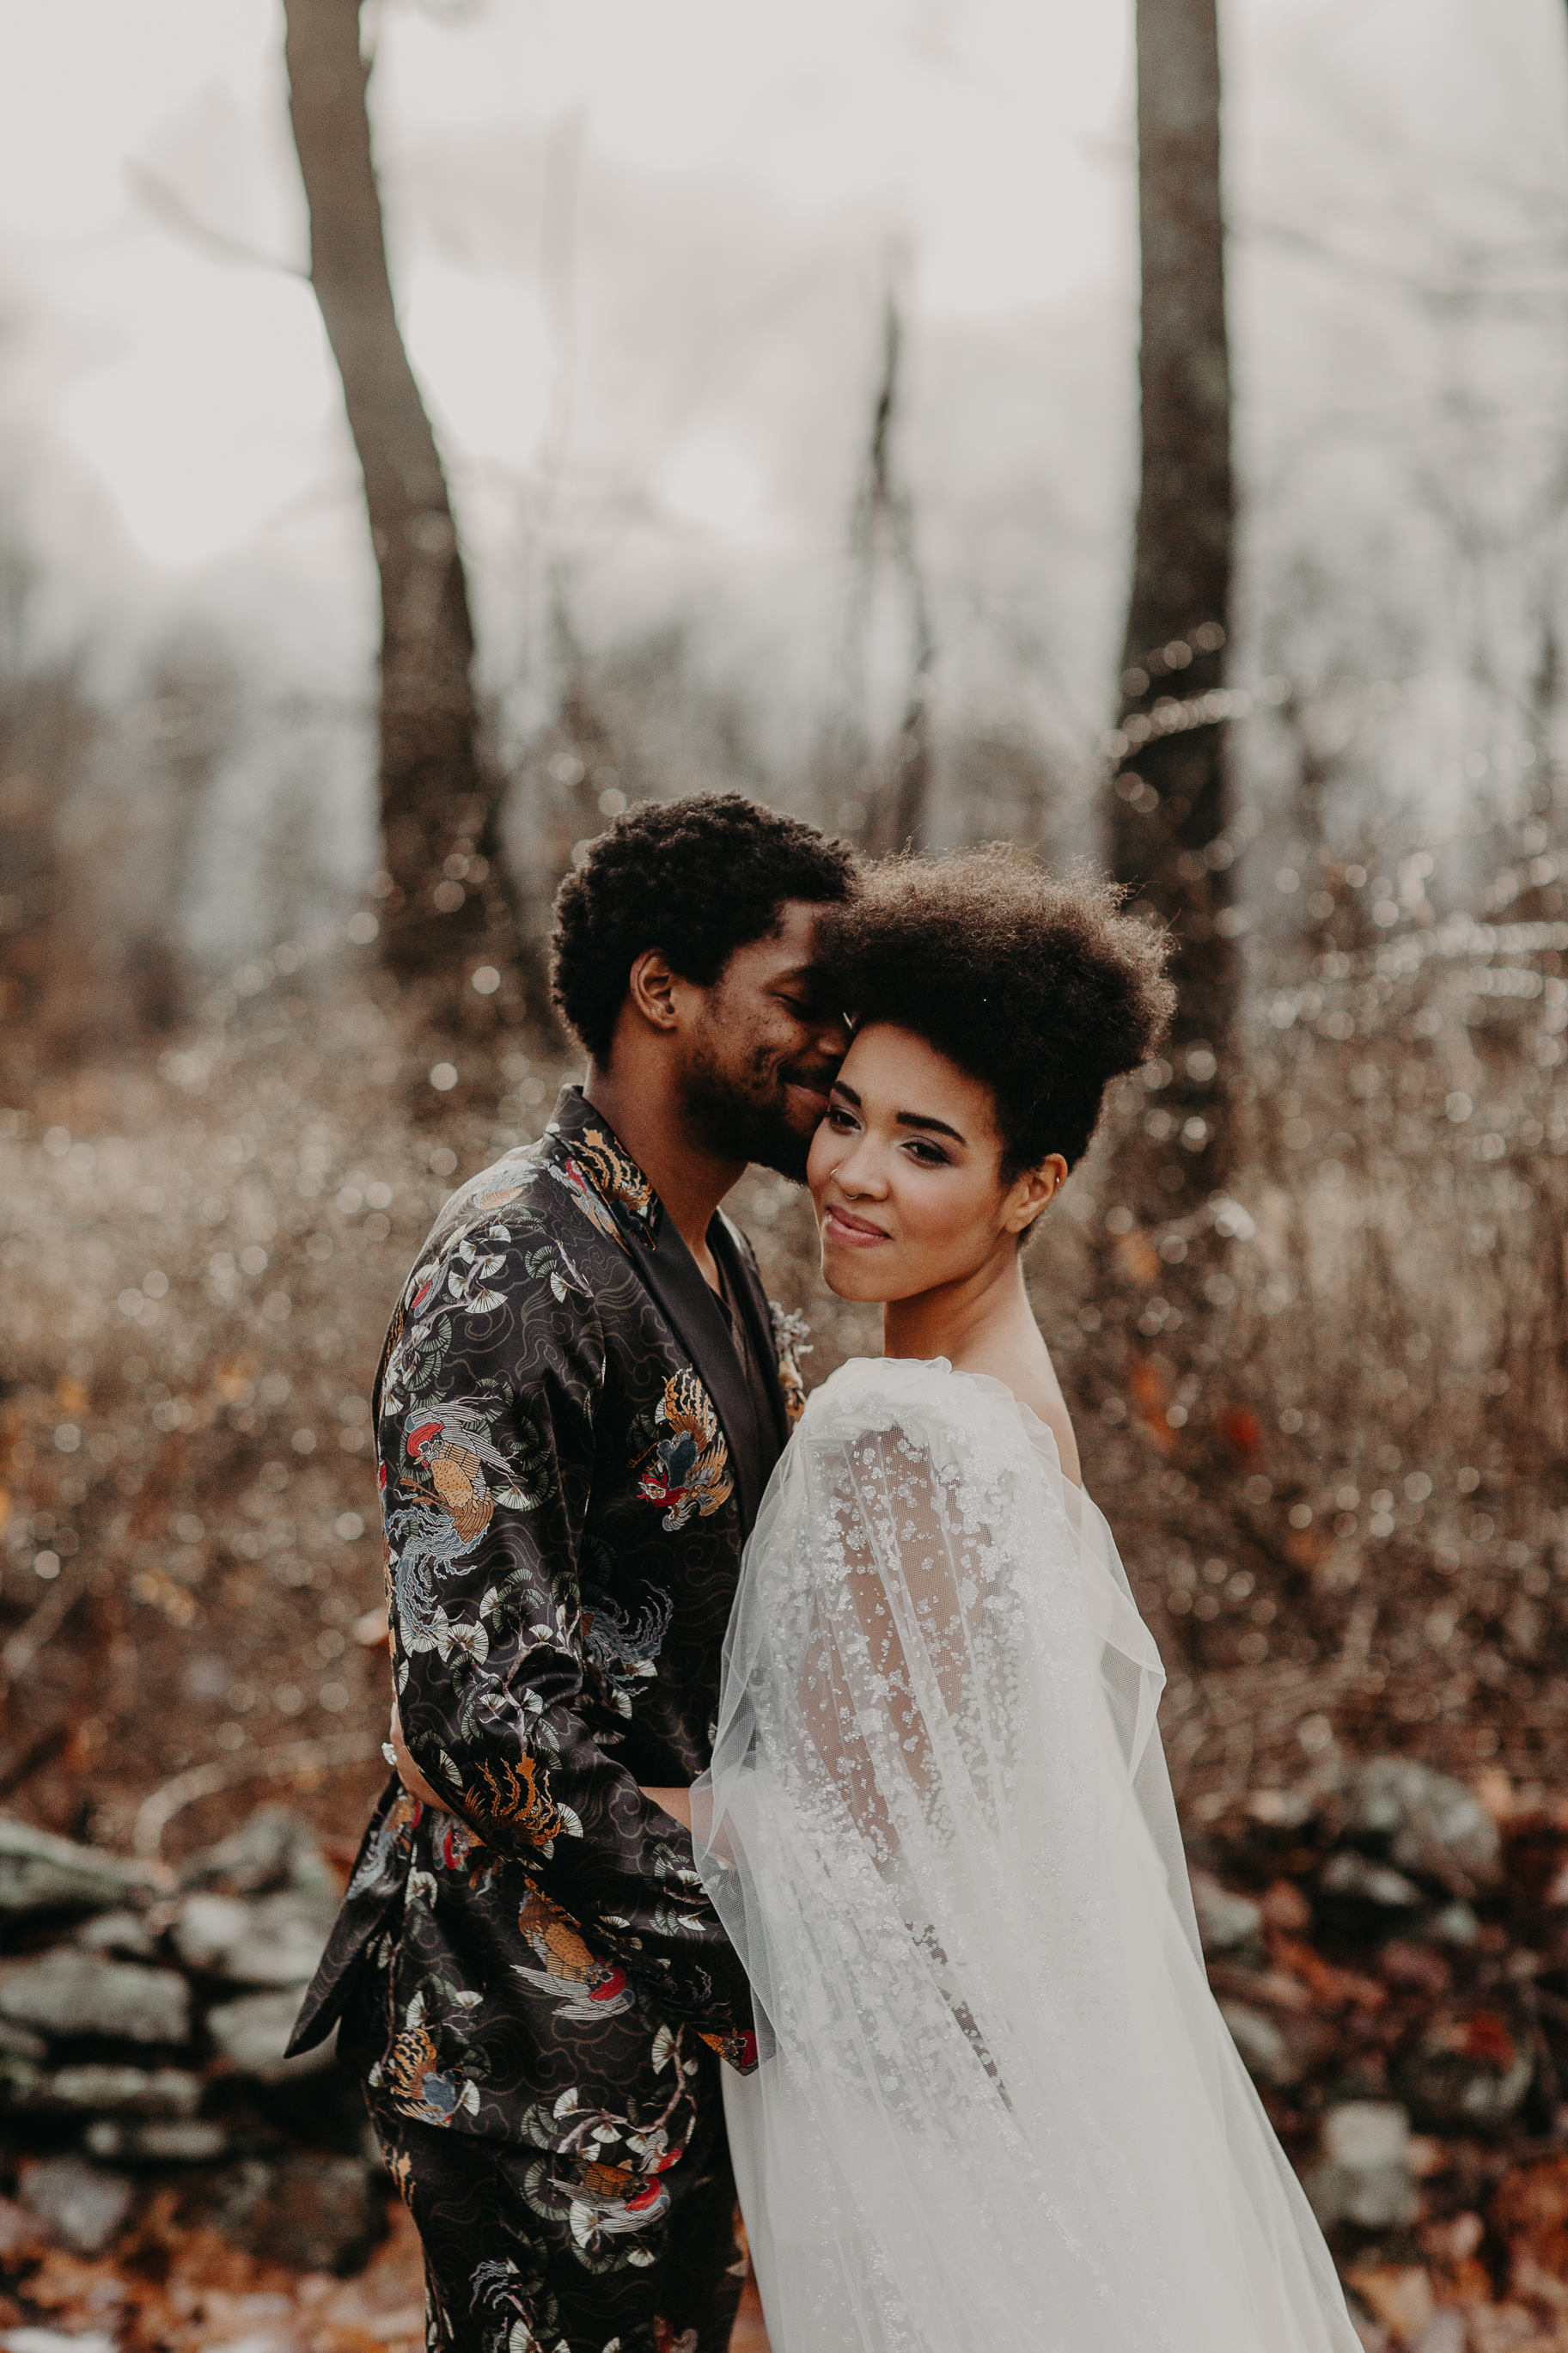 B&B winter fashionable elopement in Hudson, New York - Pearl Weddings & Events